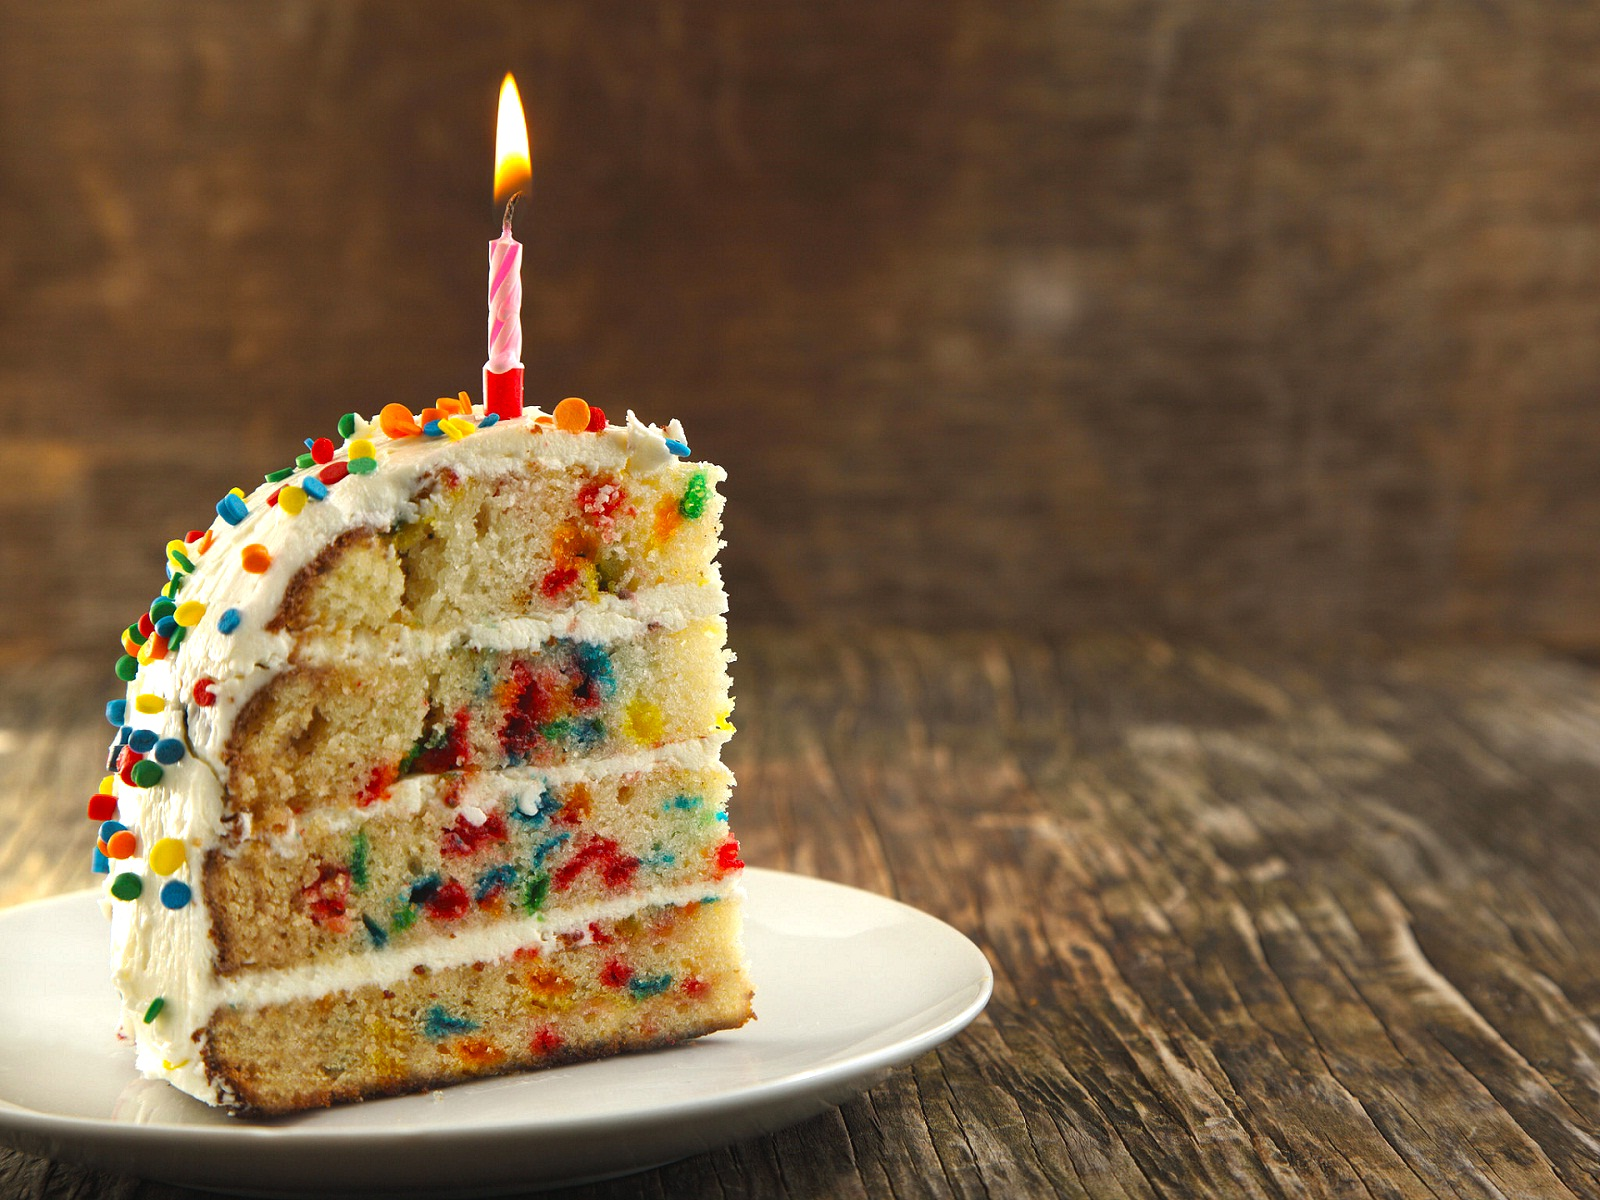 birthday cake wallpaper hd ; happy-birthday-cake-hd-wallpaper